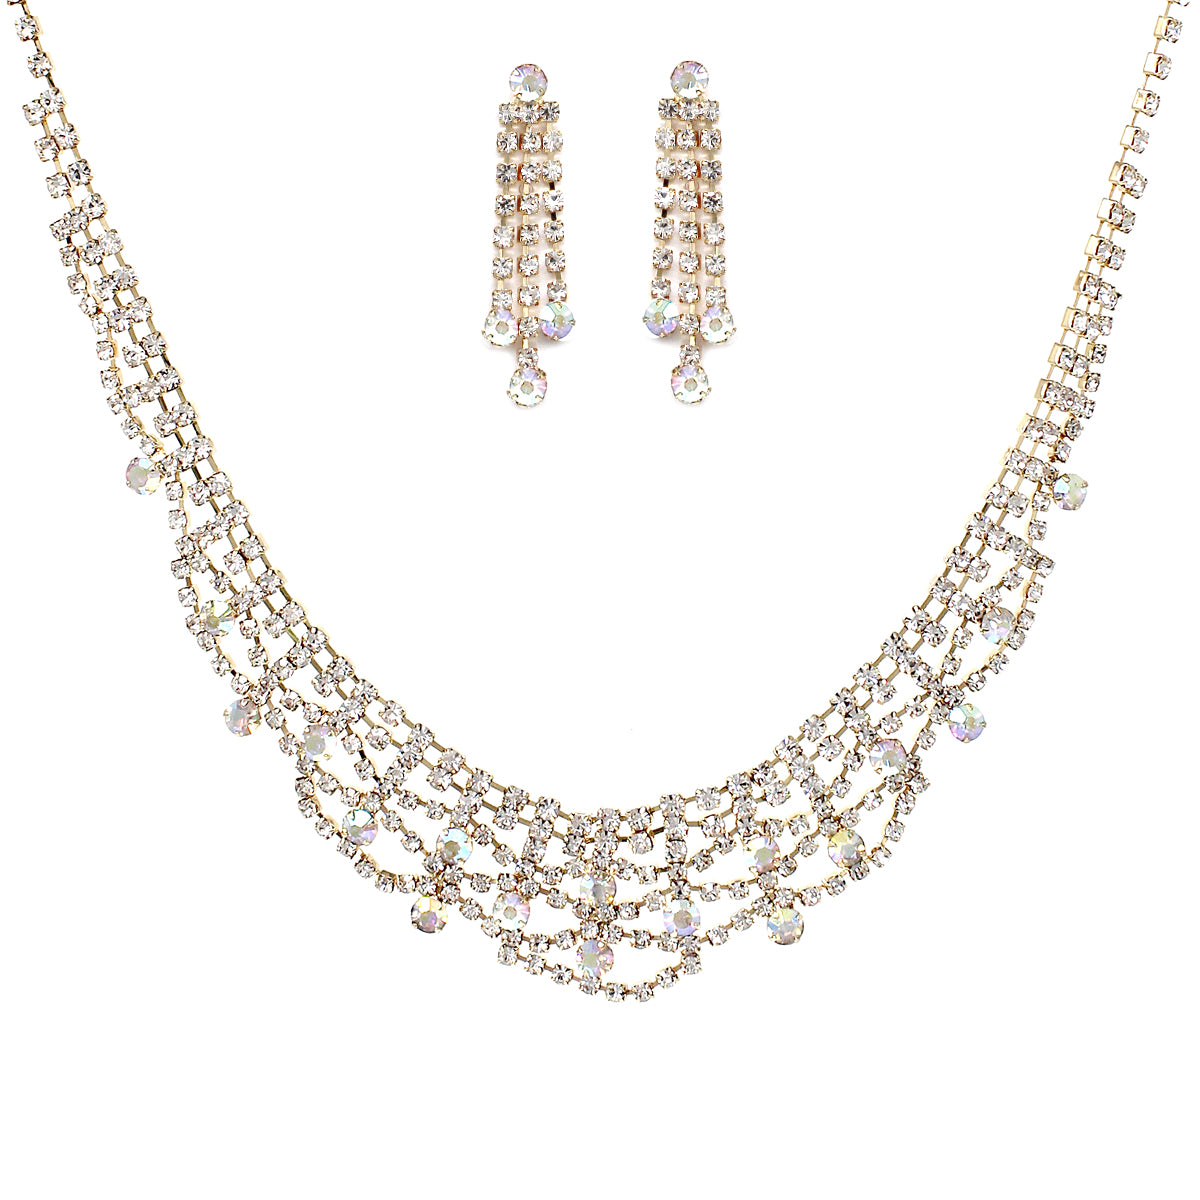 Rhinestone Pave Lace Bib Short Necklace Set